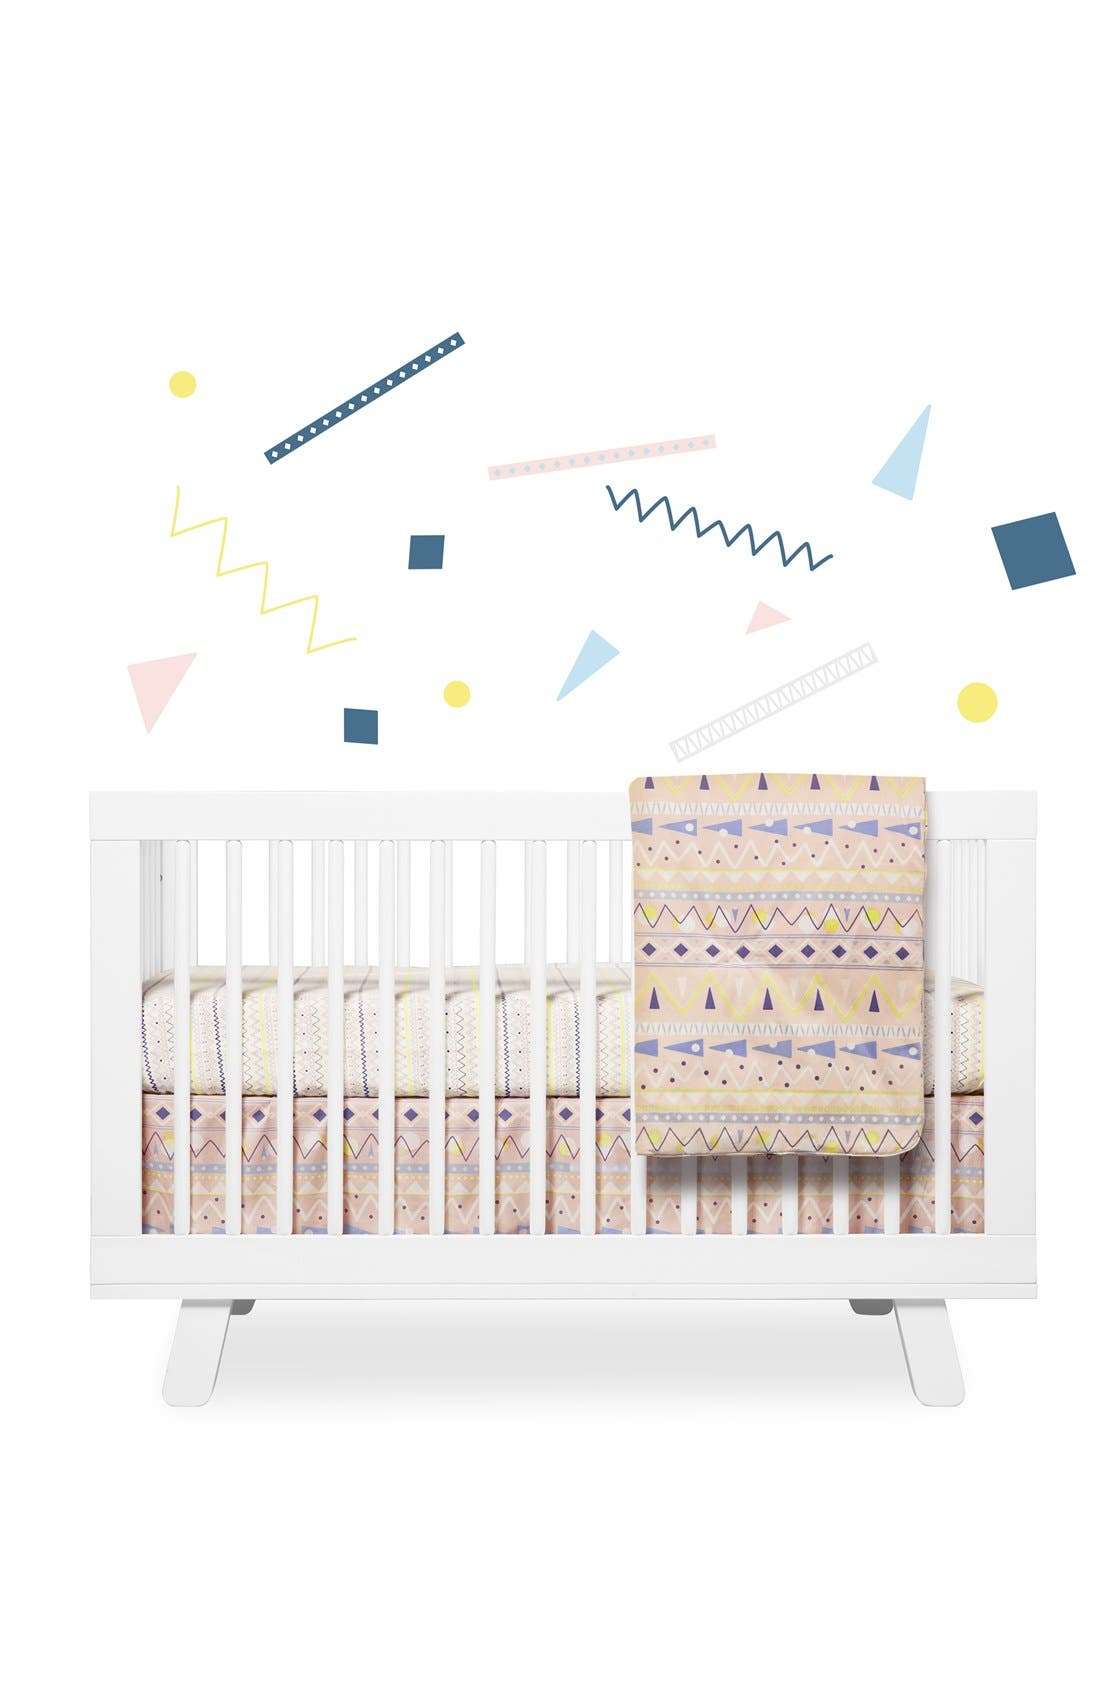 Main Image - babyletto 'Desert' Crib Sheet, Crib Skirt, Changing Pad Cover, Play Blanket, Stroller Blanket & Wall Decals